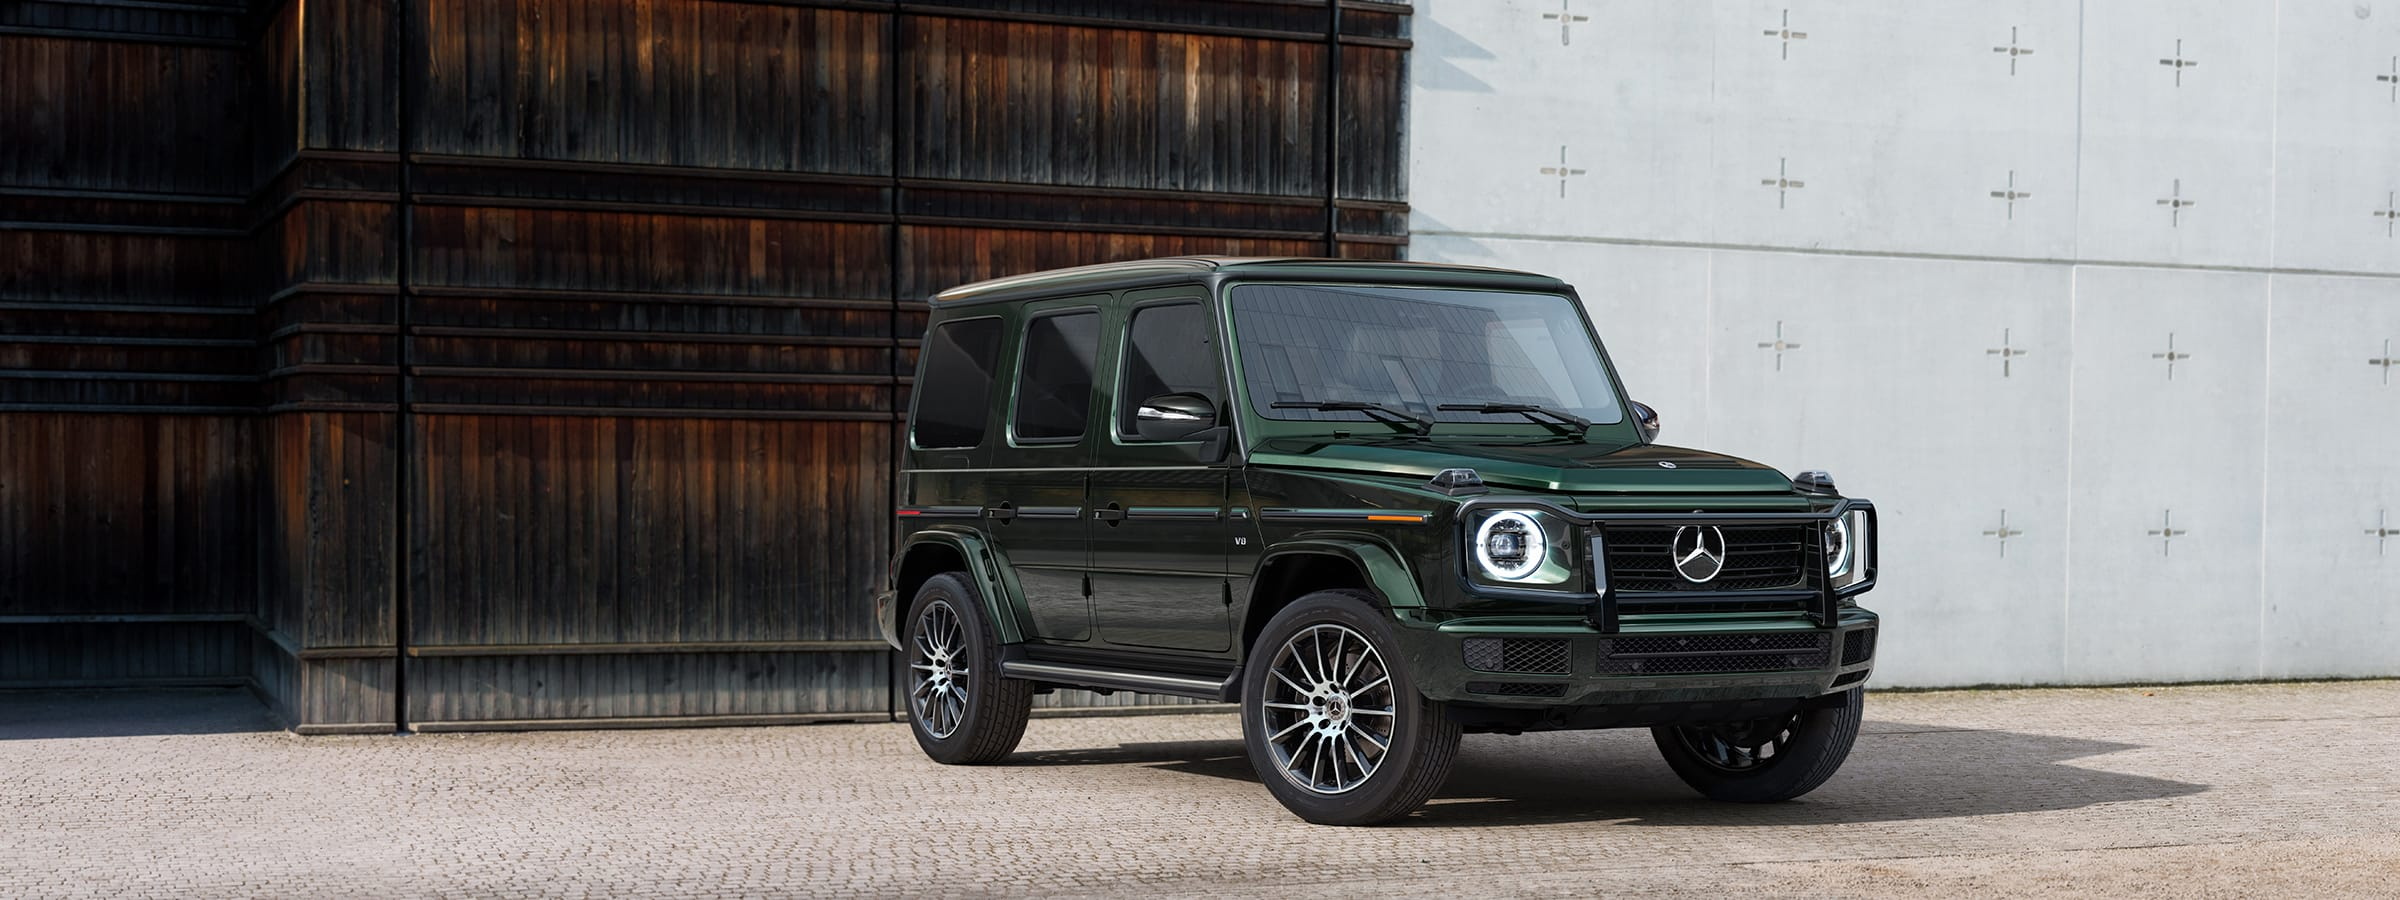 Mercedes Benz G Class Special Offers In Germantown Maryland Euro Motorcars Germantown